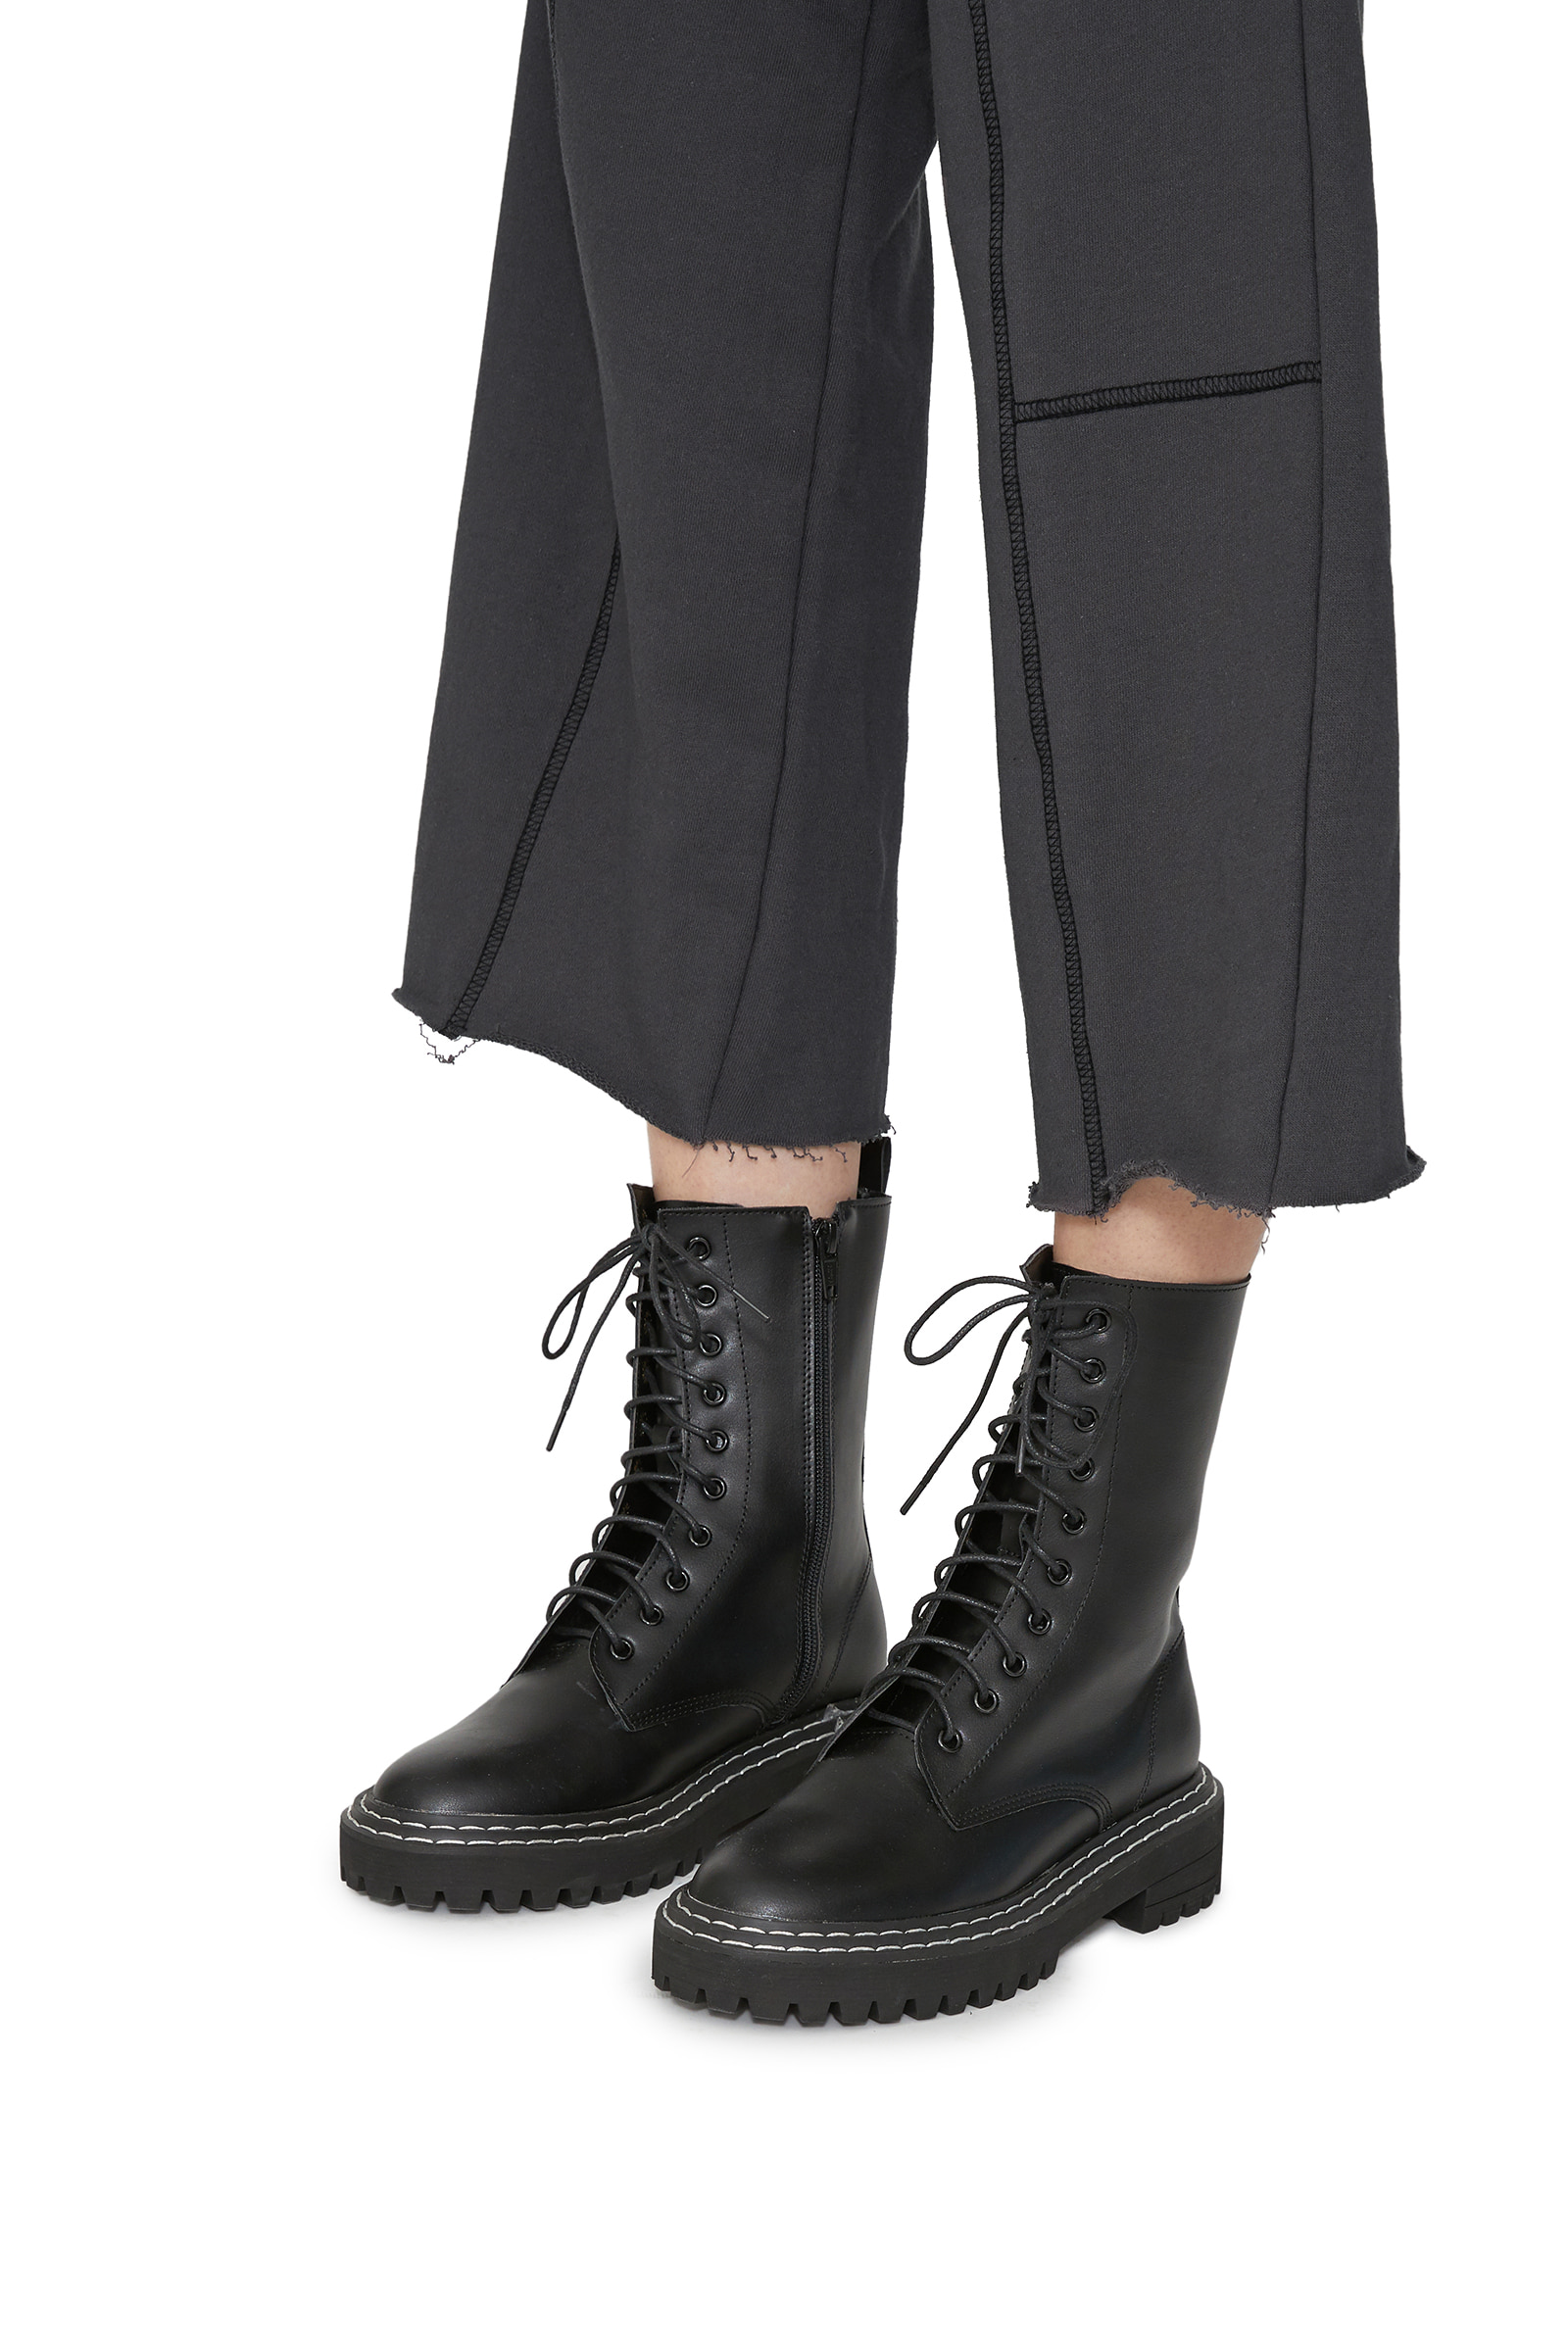 Prince lace-up walker boots